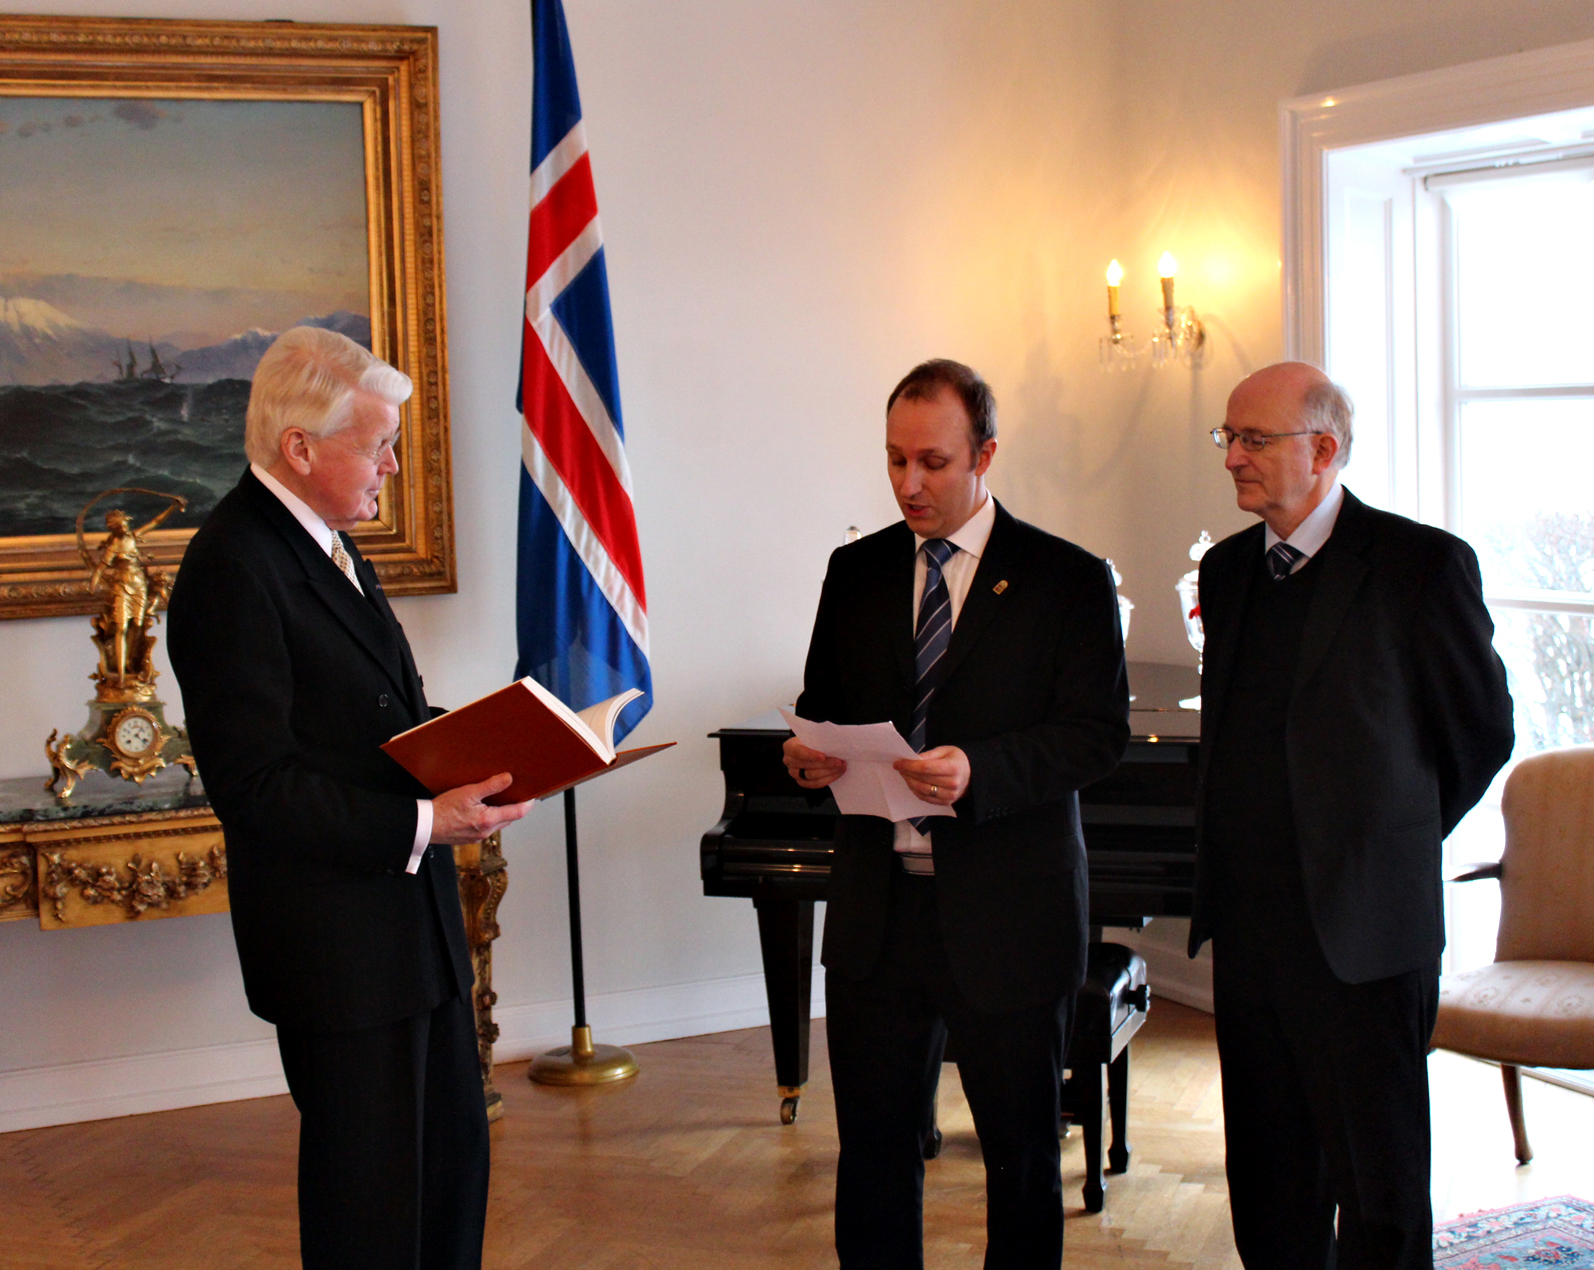 Personal audience with former Icelandic president Olafur Ragnar Grimsson at the presidential residence at Bessastadir.